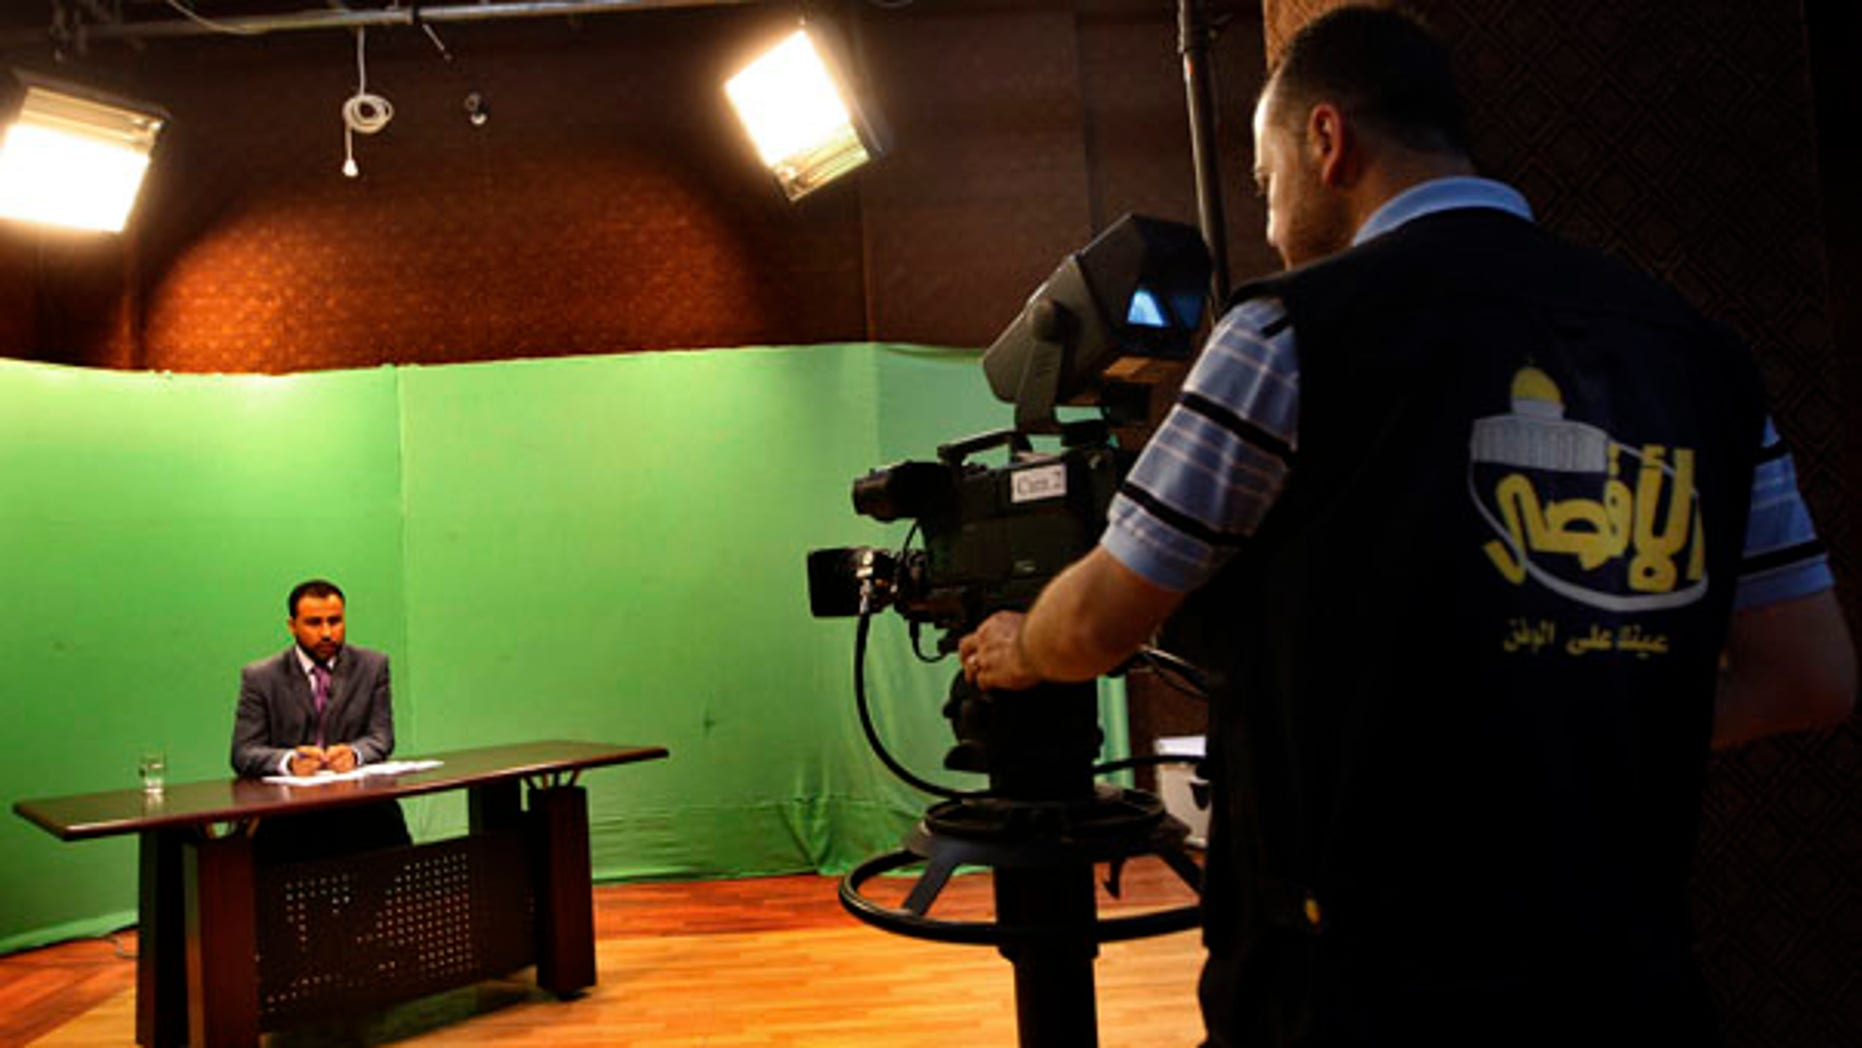 June 15: A Palestinian cameraman films a broadcaster presenting a live program at the Hamas Al Aqsa TV station in Gaza City.